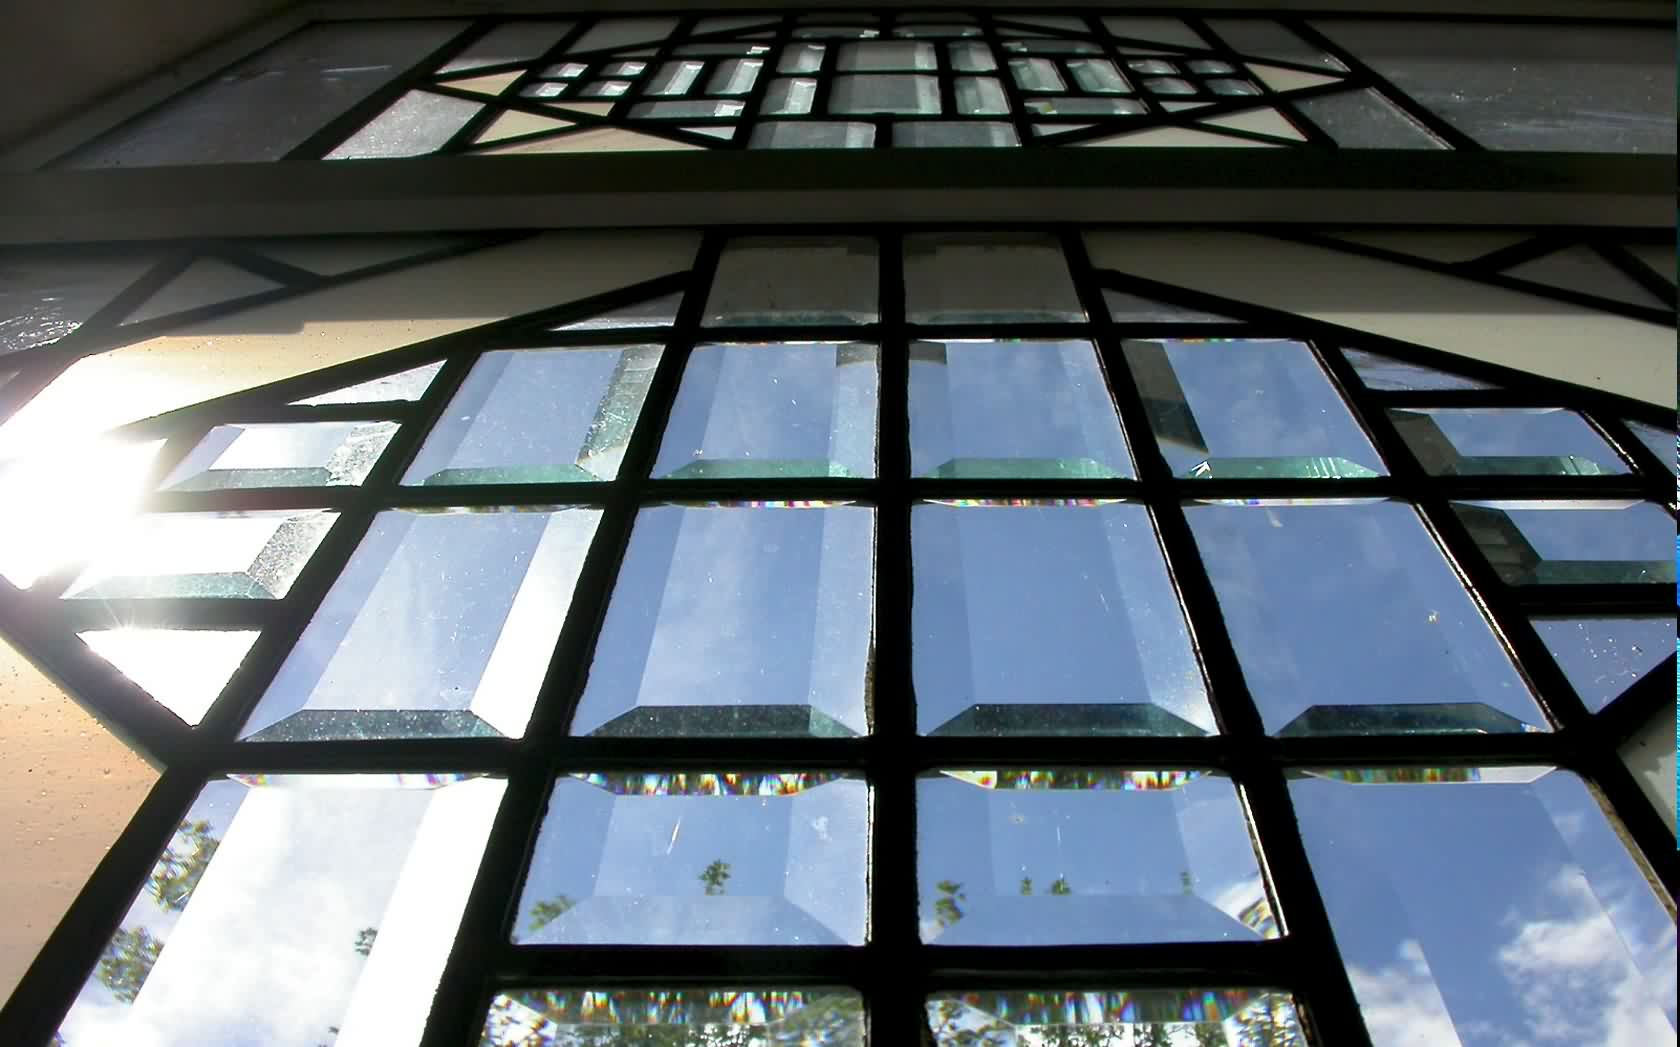 Stained glass windows, monochrome hues using bevels and Opal glass